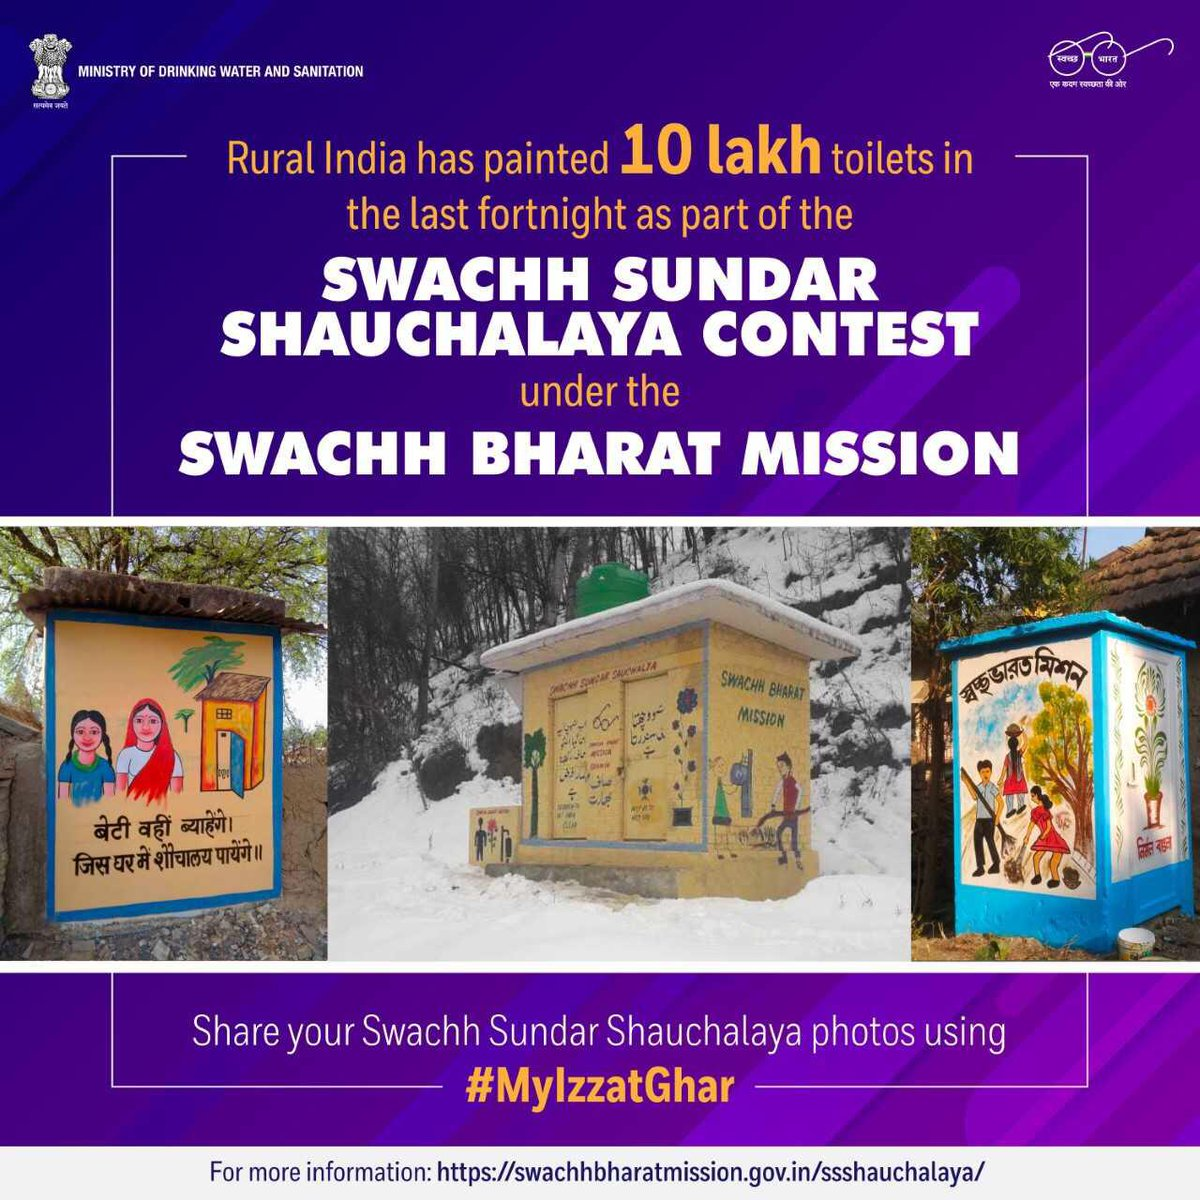 Here is a unique contest that strengthens the Swachh Bharat Mission!   In two weeks ten lakh rural toilets have already been painted.  Share your Swachh Sundar Shauchalaya using #MyIzzatGhar.